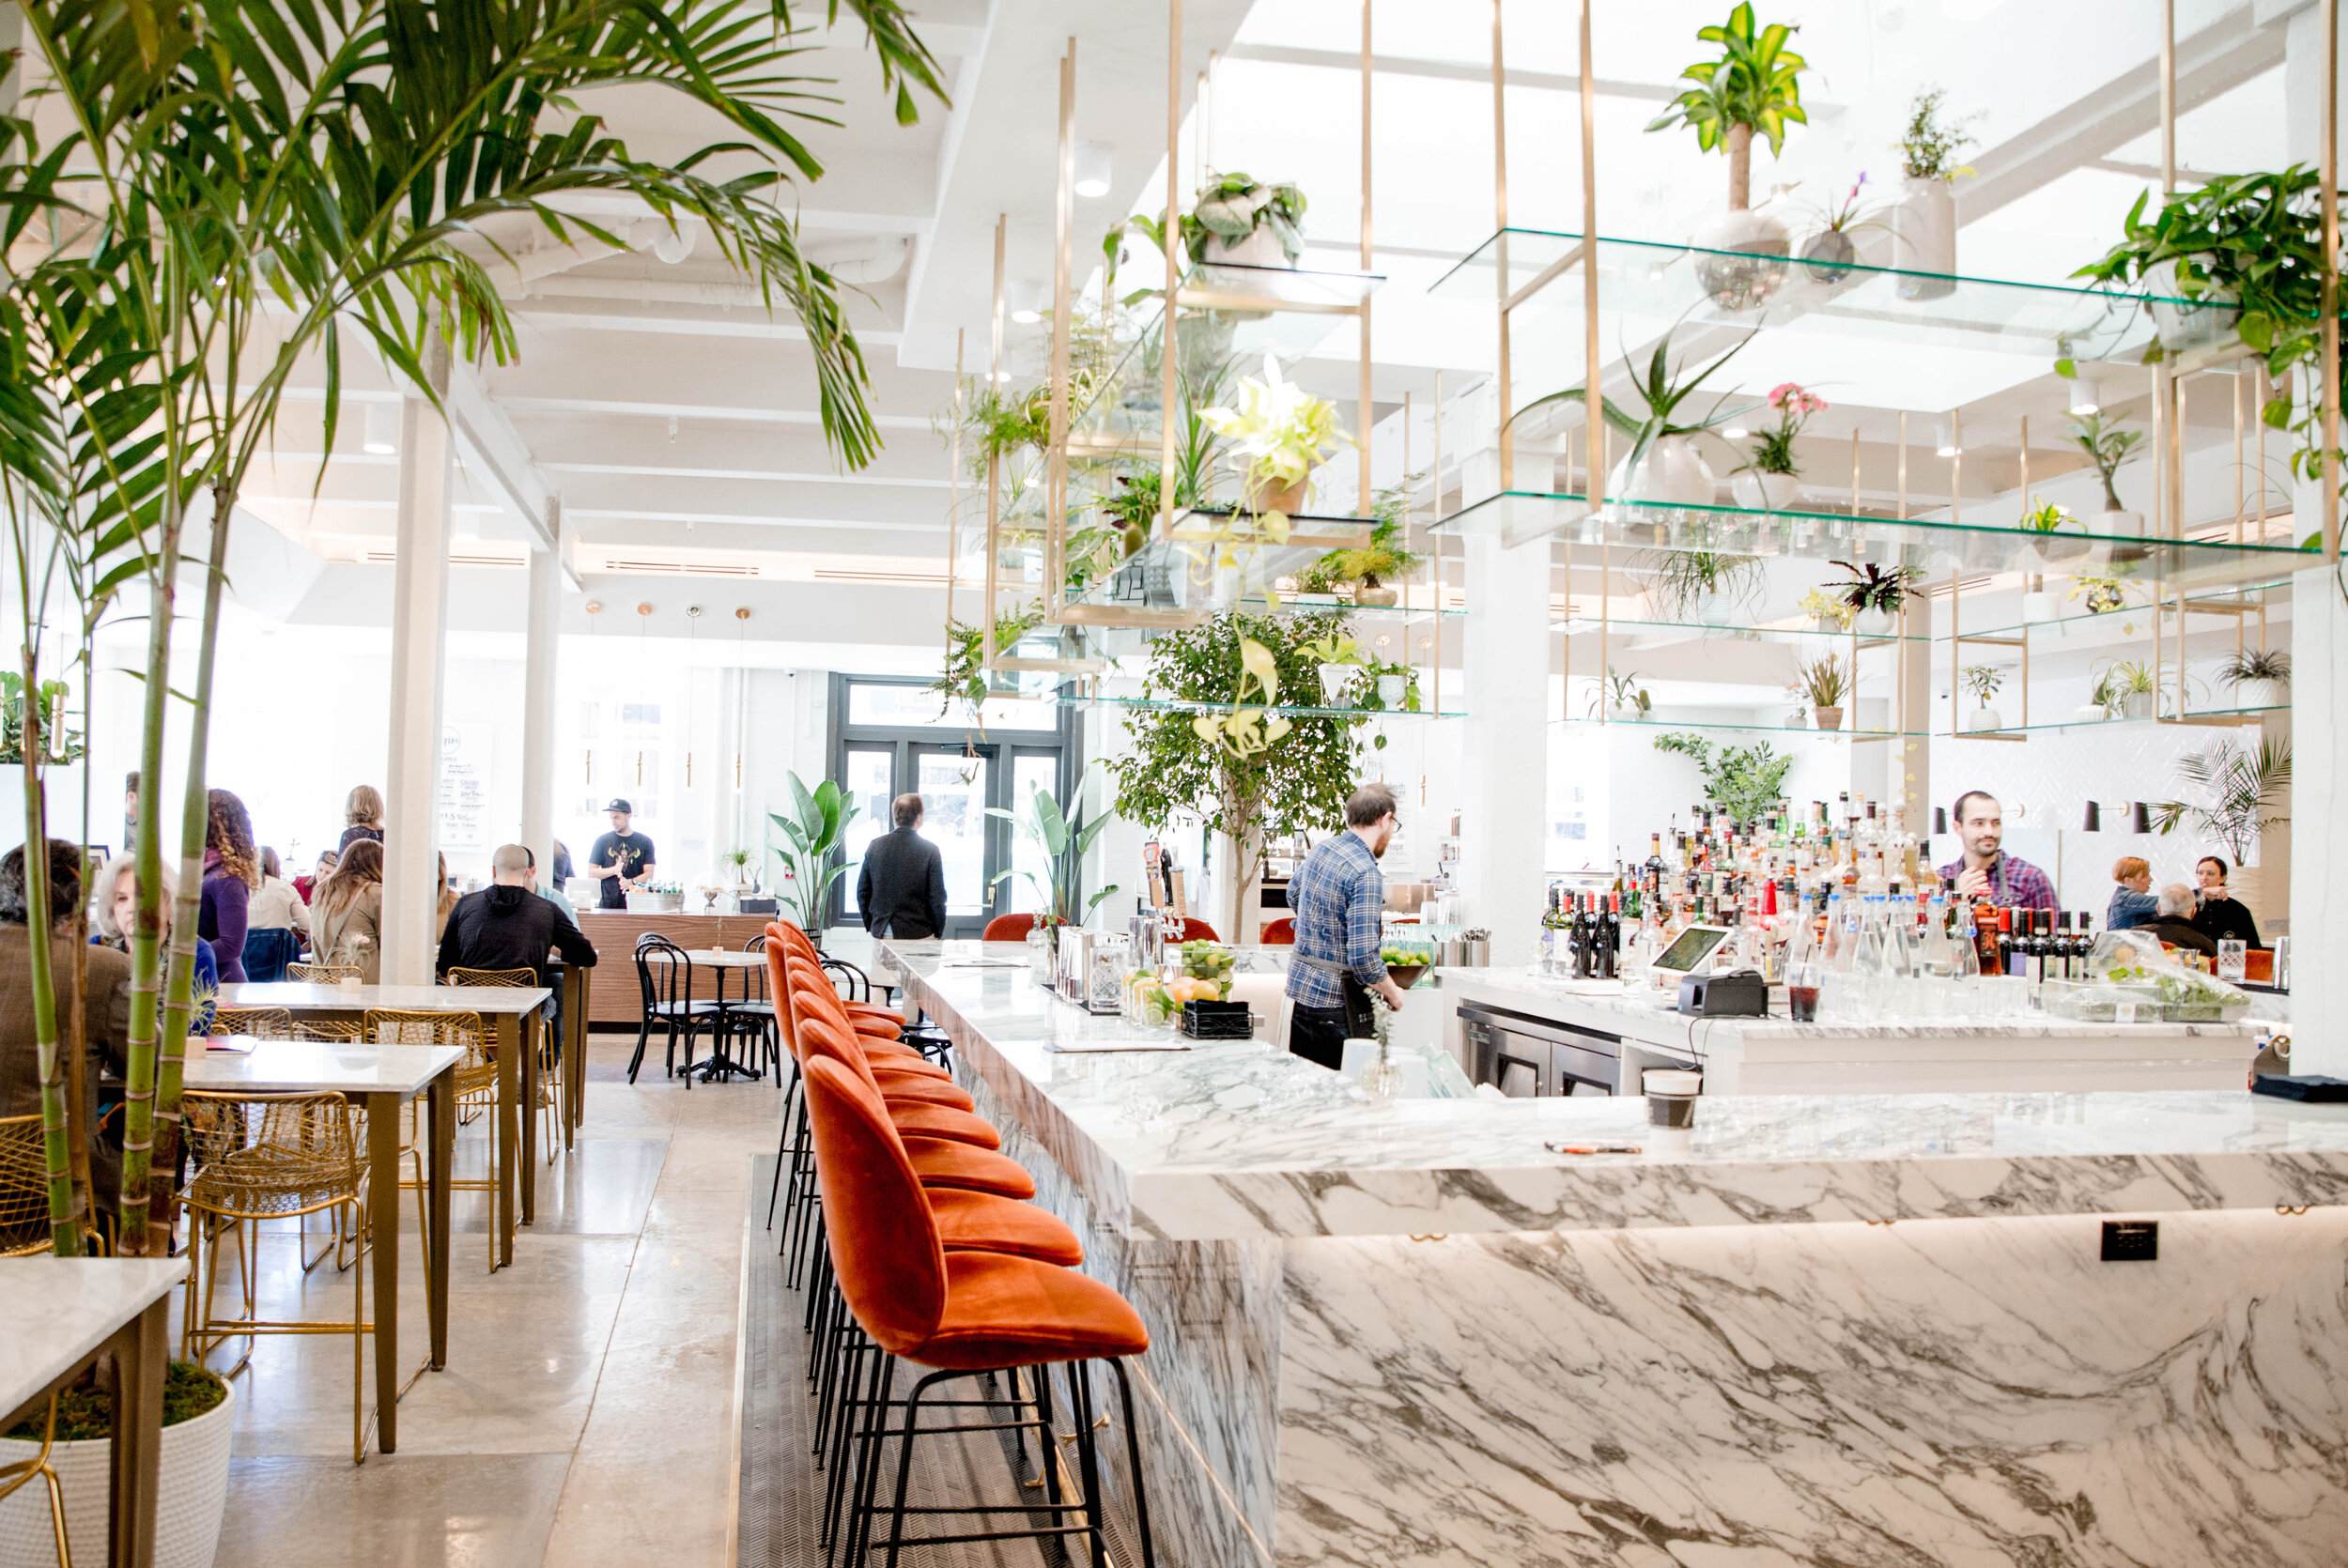 With all the plants, marble, and brass, who wouldn't feel fancy here?